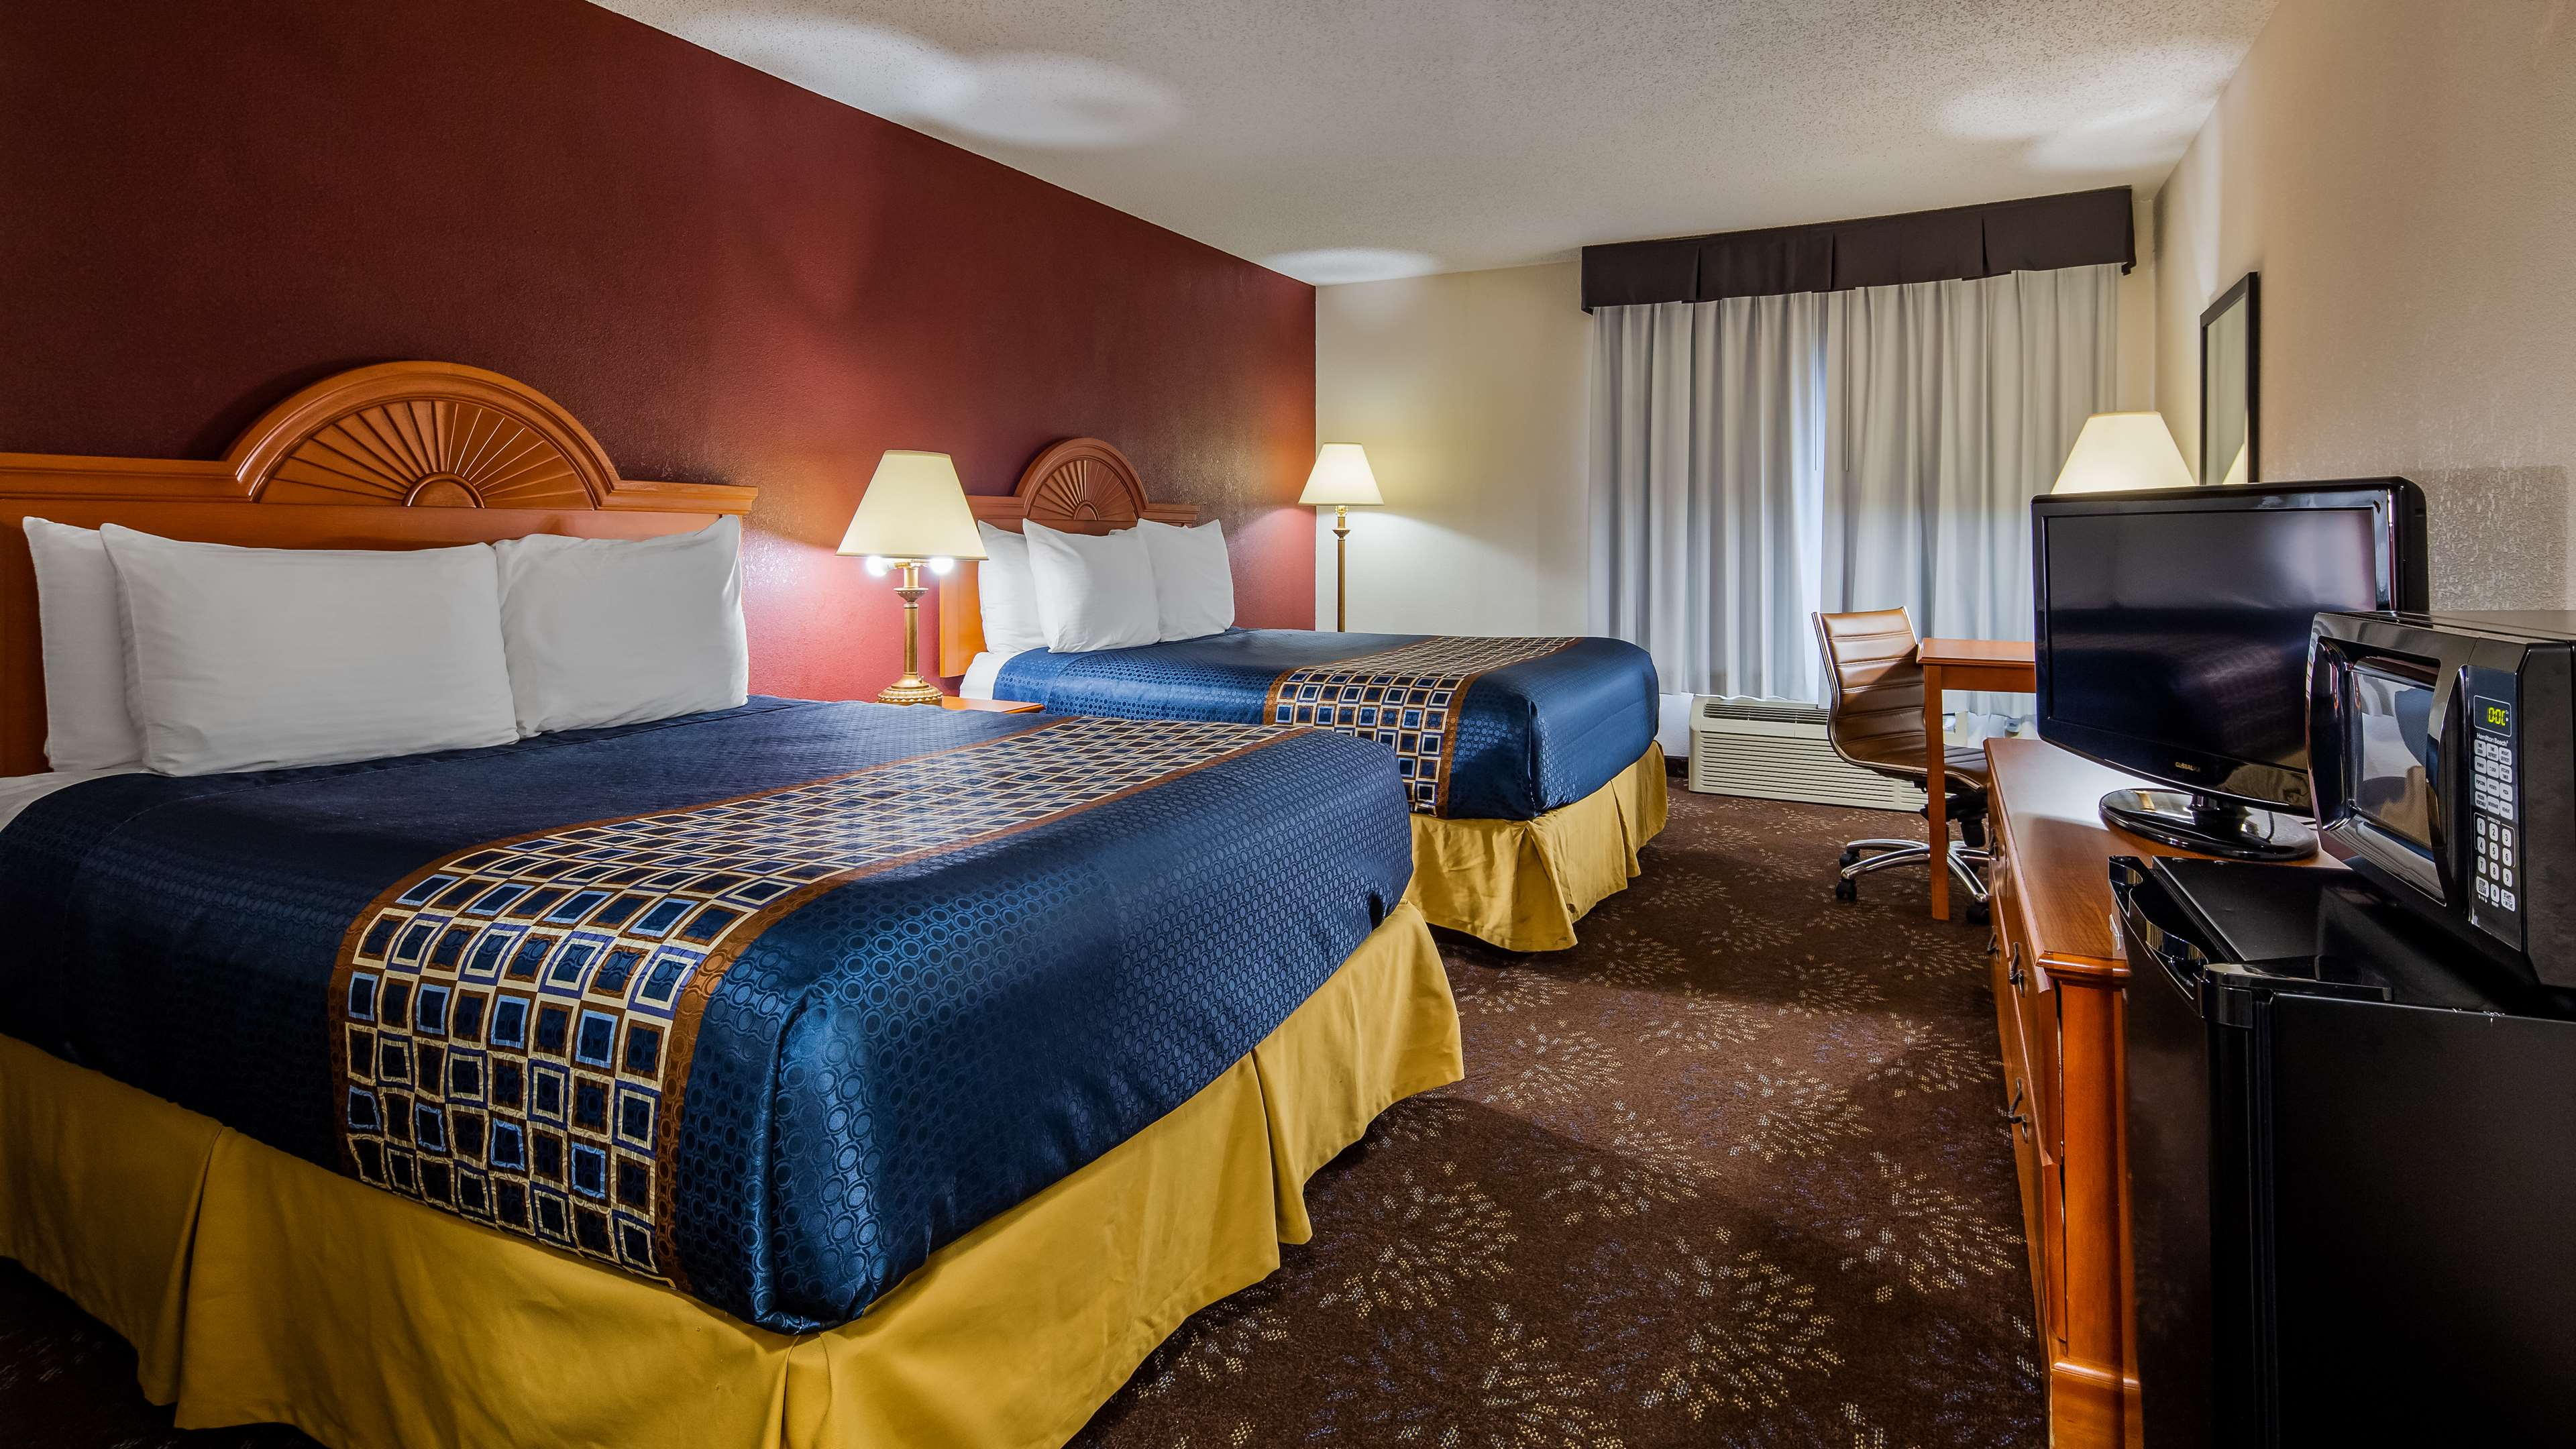 SureStay Plus Hotel by Best Western Evansville image 19